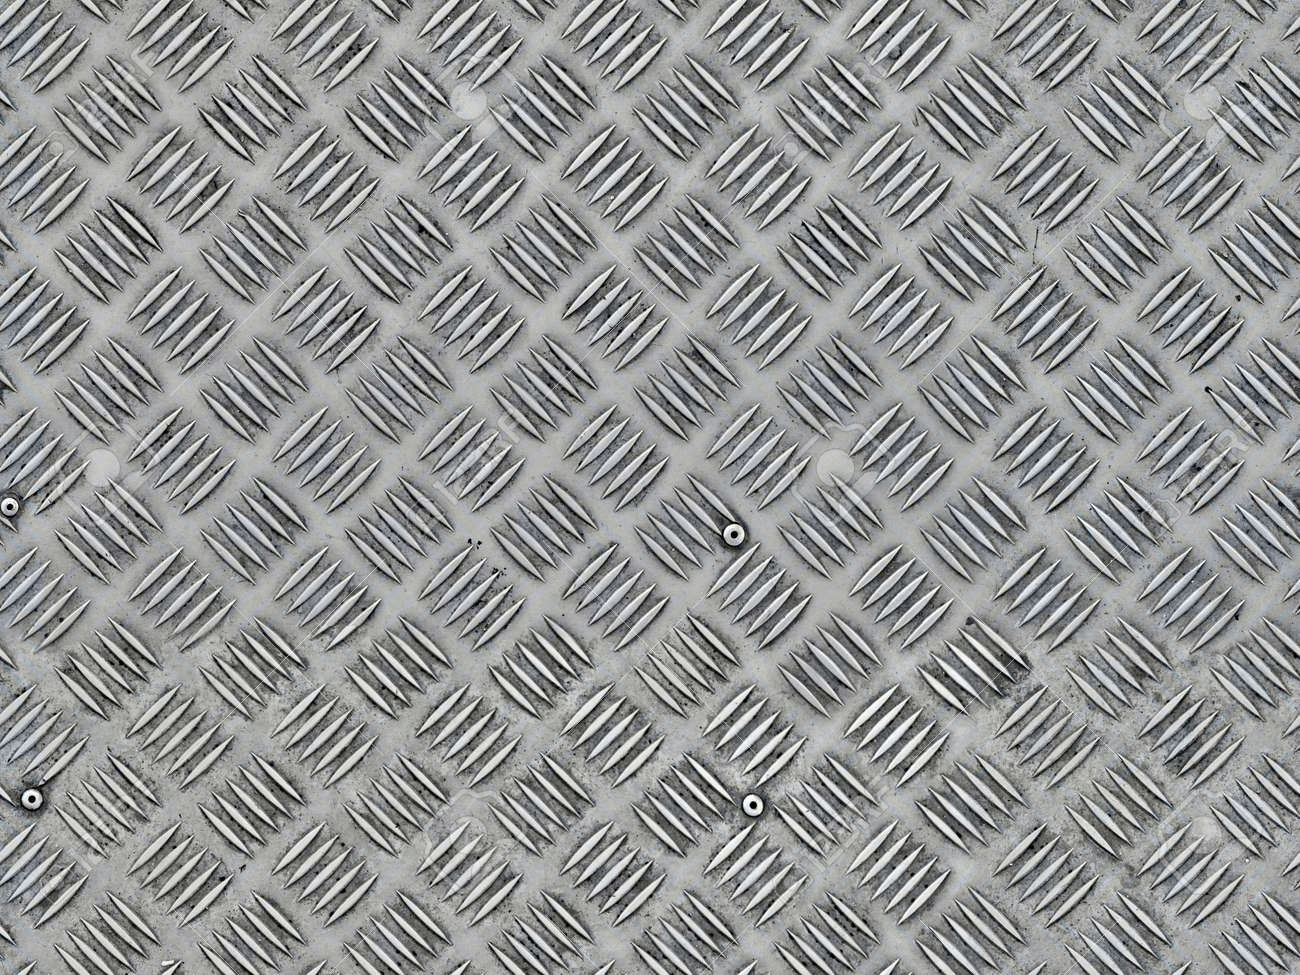 metal plate with press out pattern seamless texture - 157842331